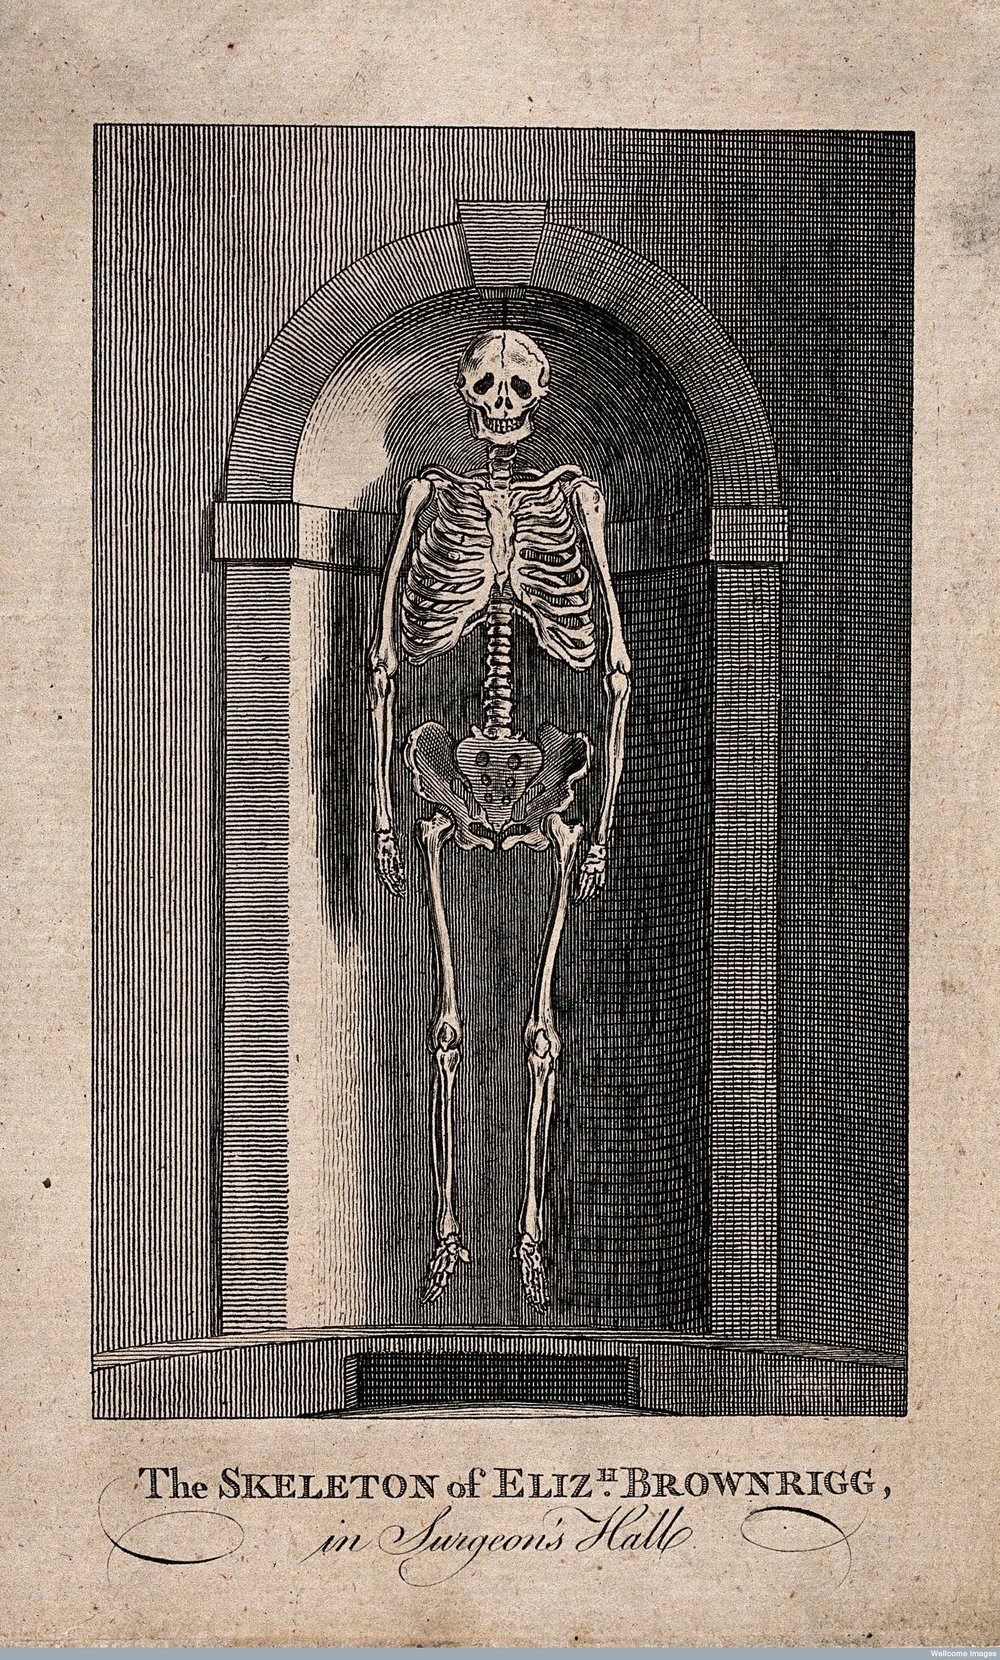 The skeleton of Elizabeth Brownrigg, displayed in a niche at the Royal College of Surgeons. Engraving. Wellcome Images V0013496